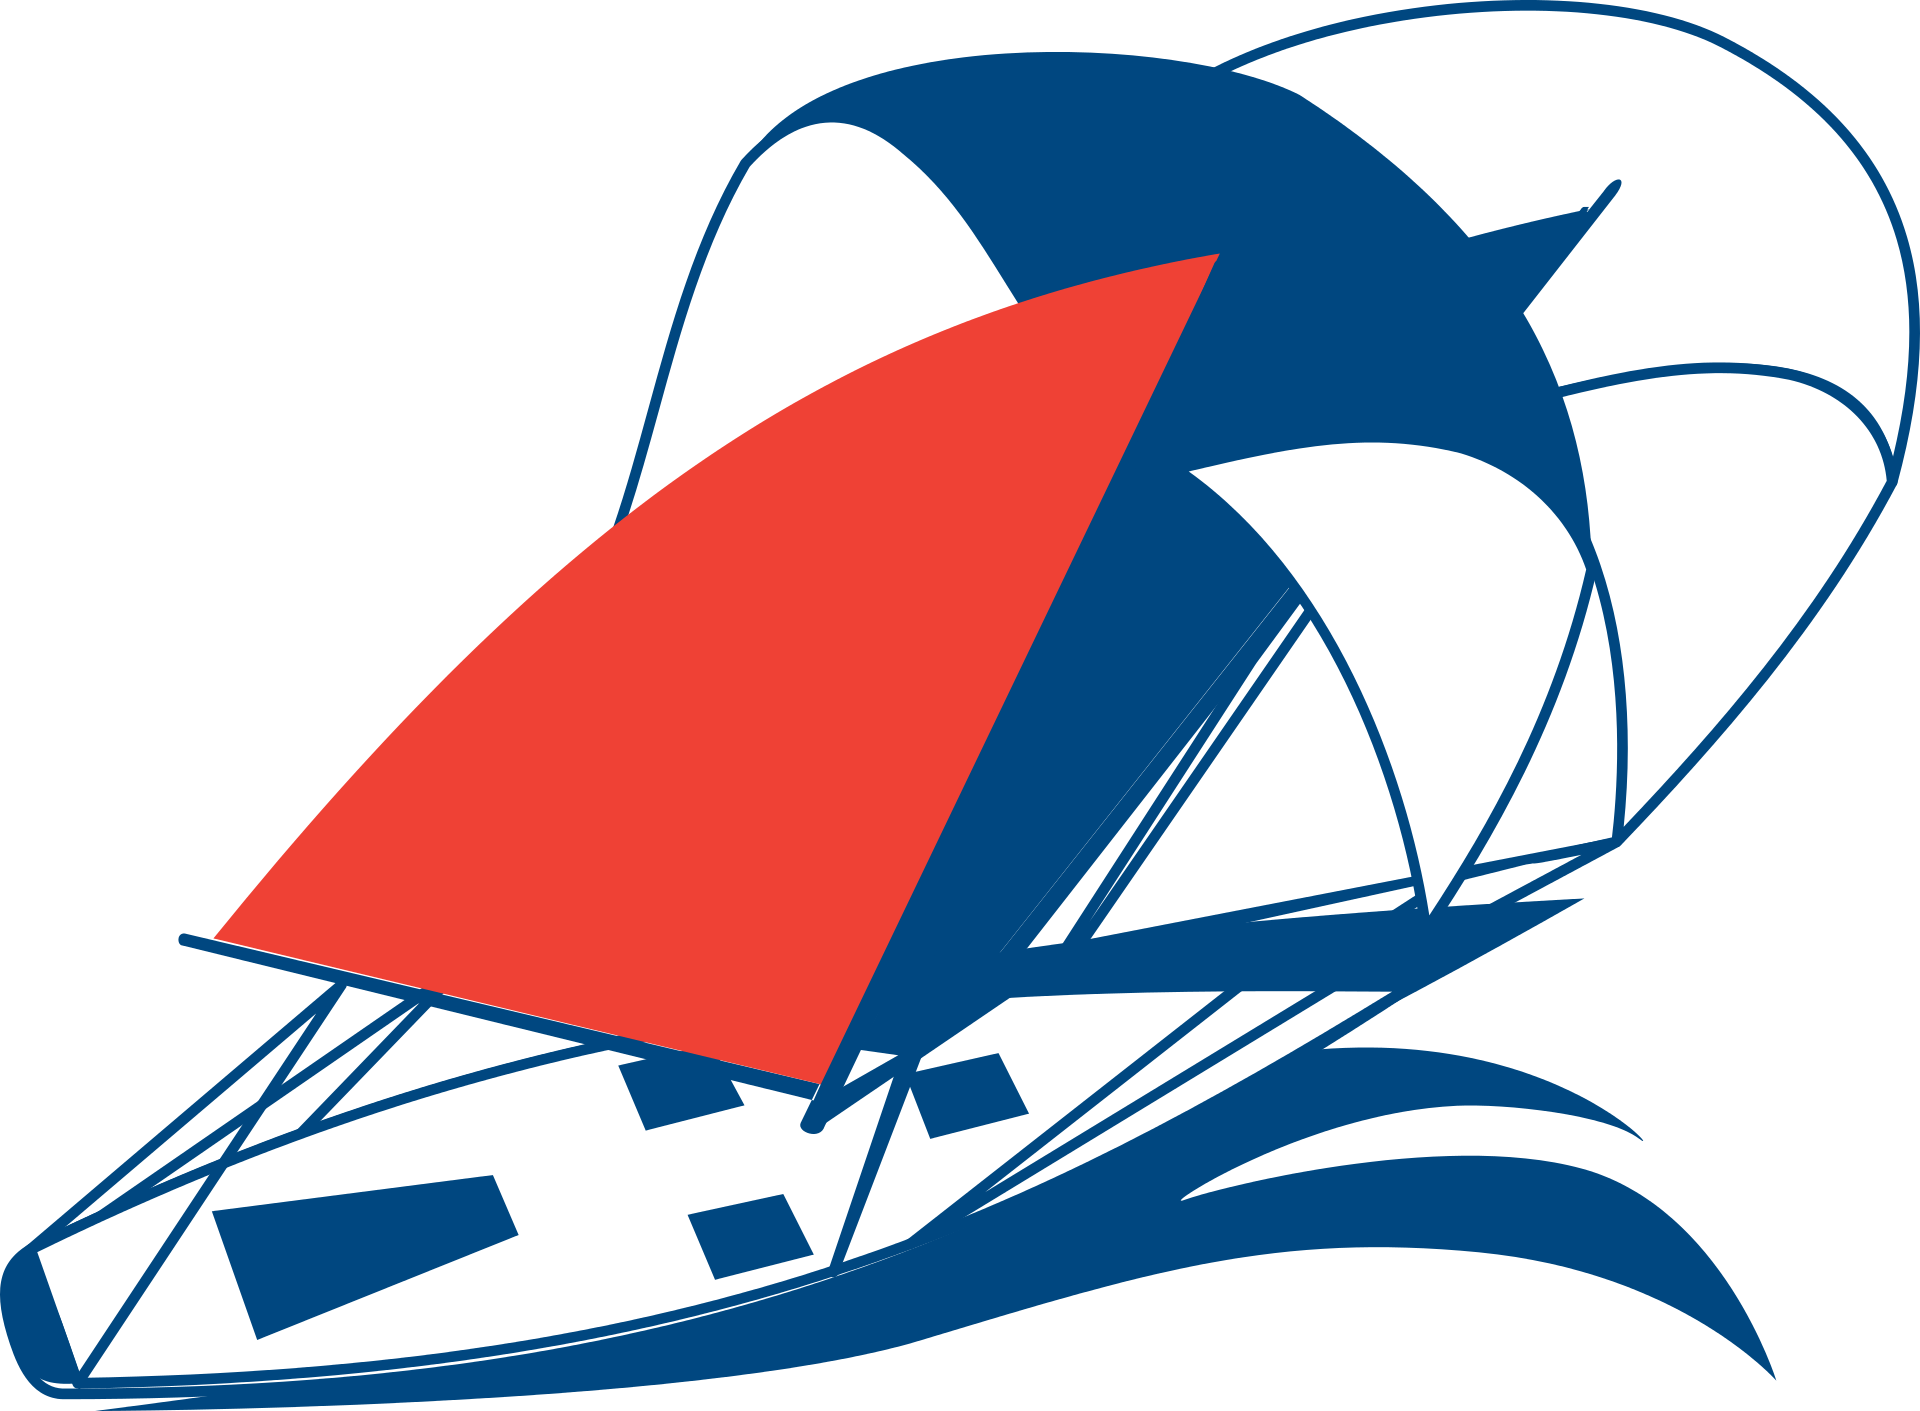 Graphical yacht photo